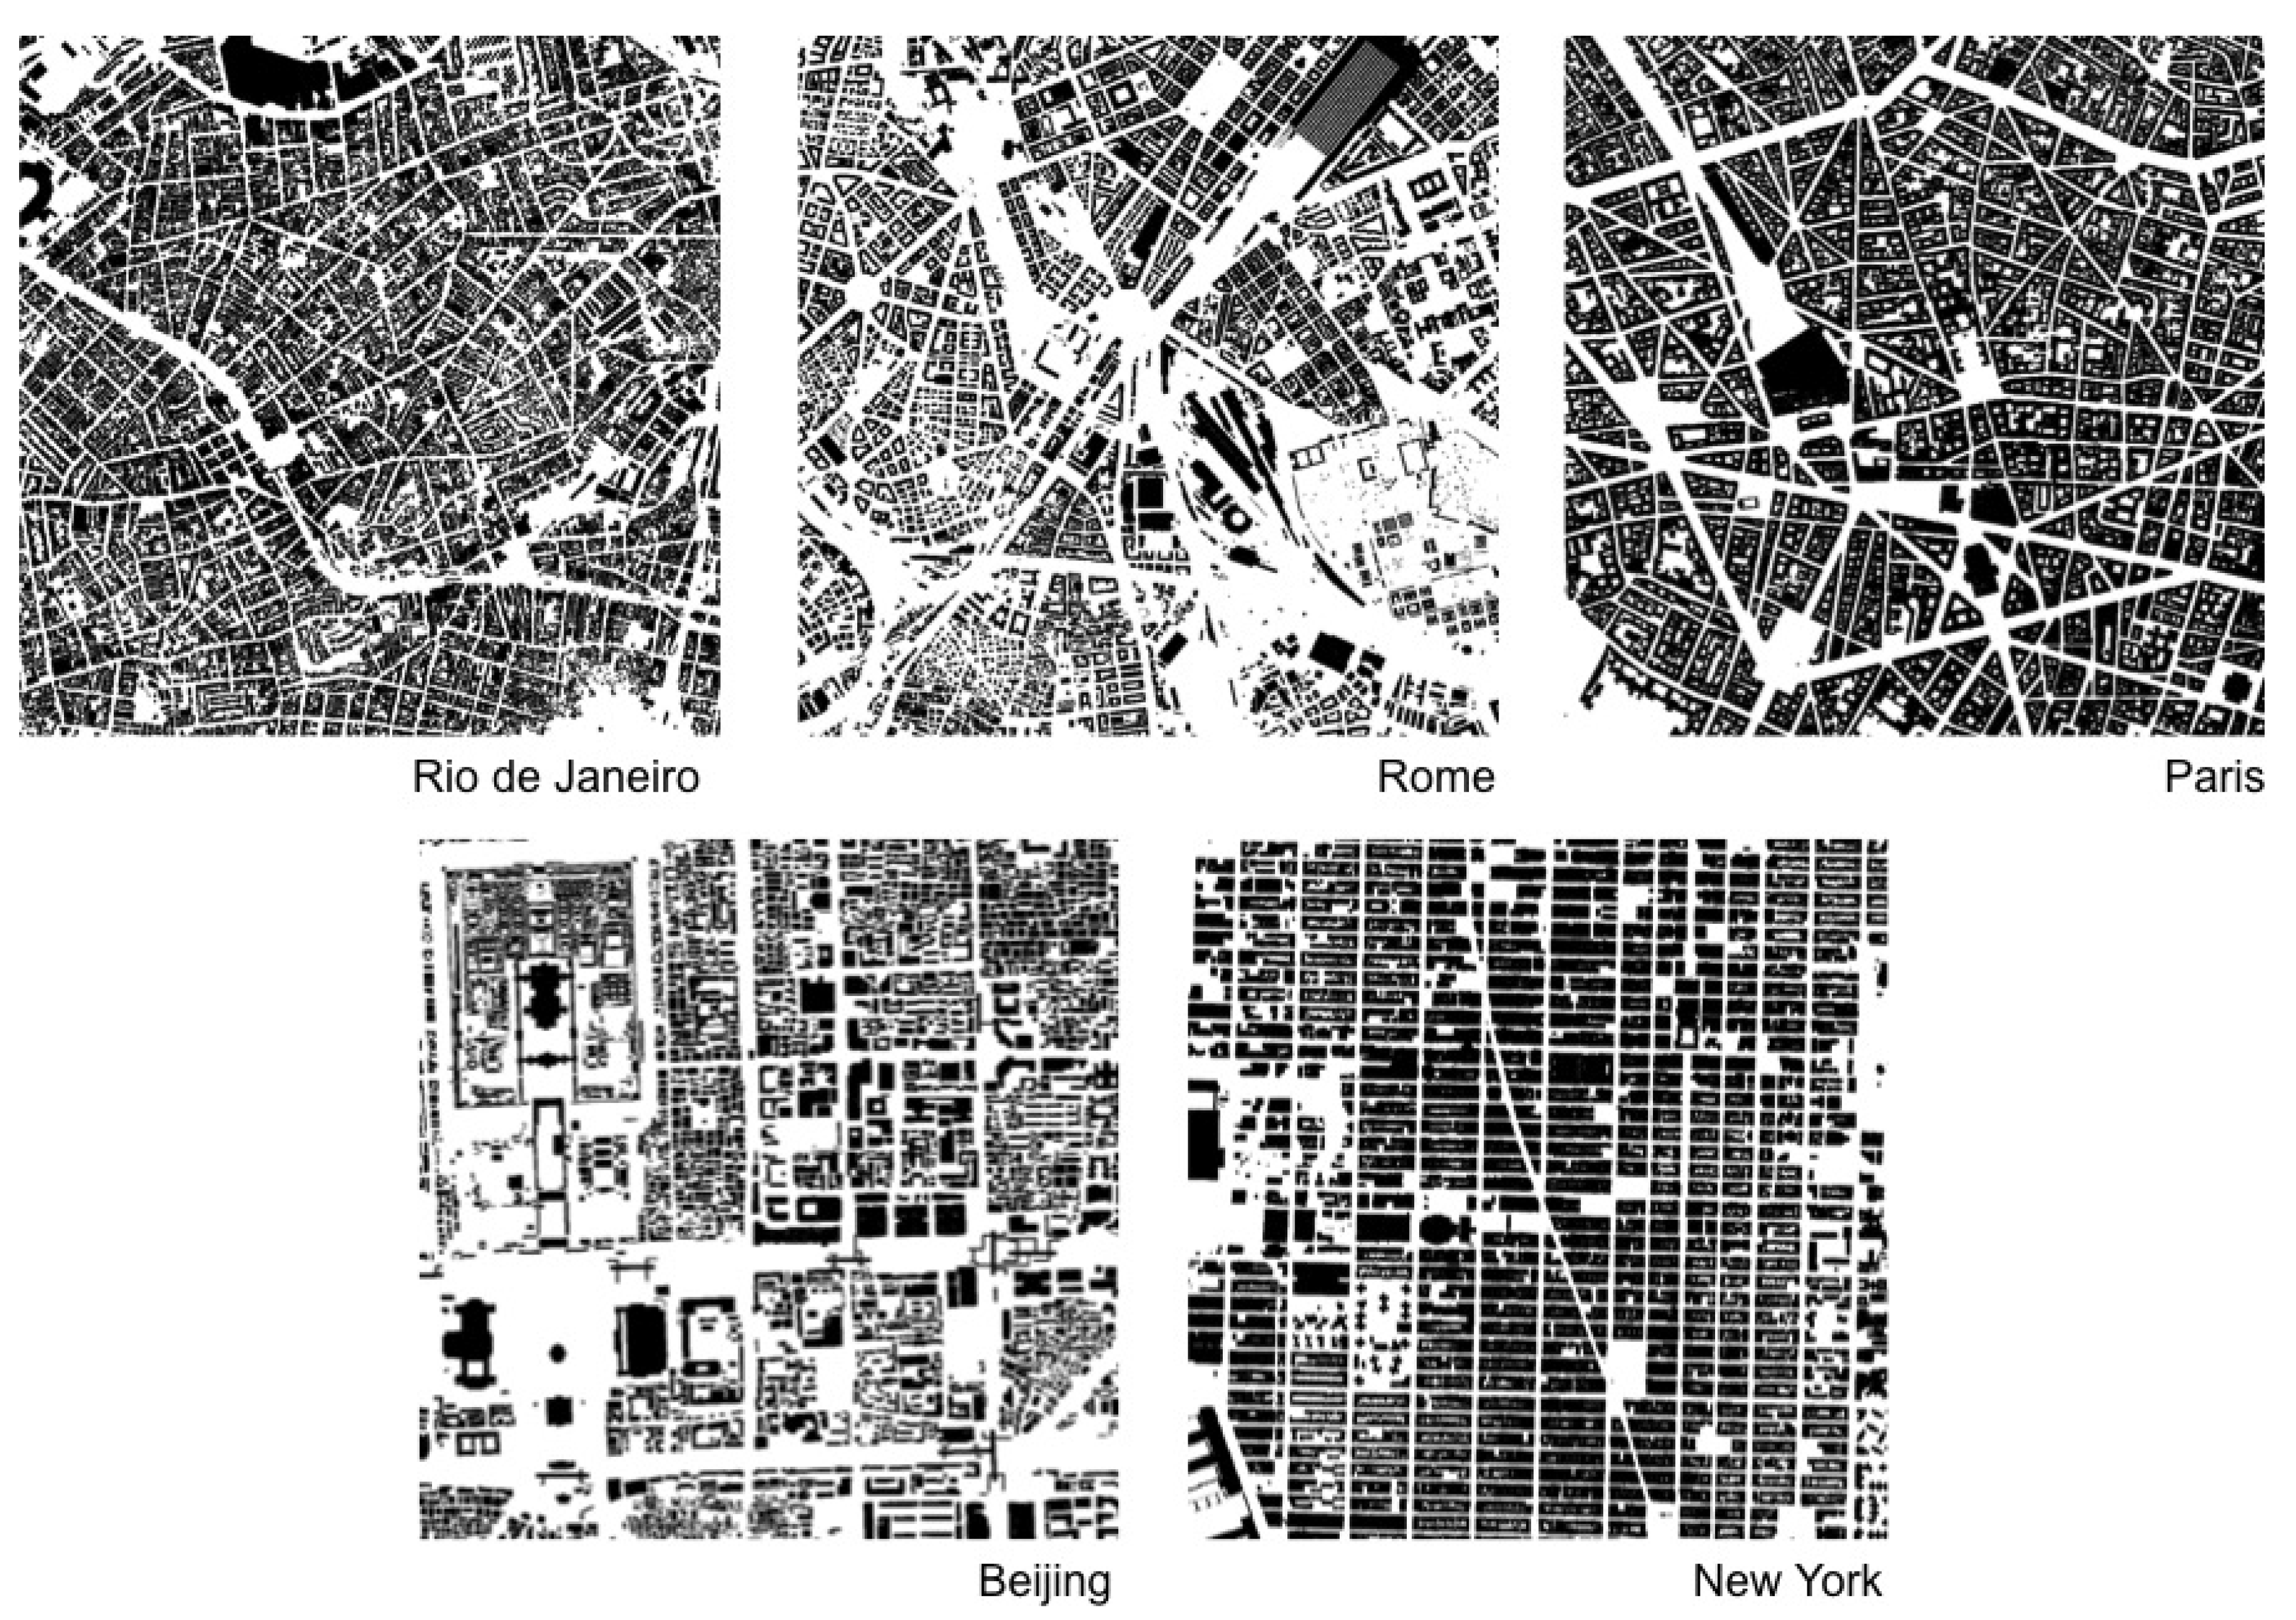 Entropy | Free Full-Text | Cities, from Information to